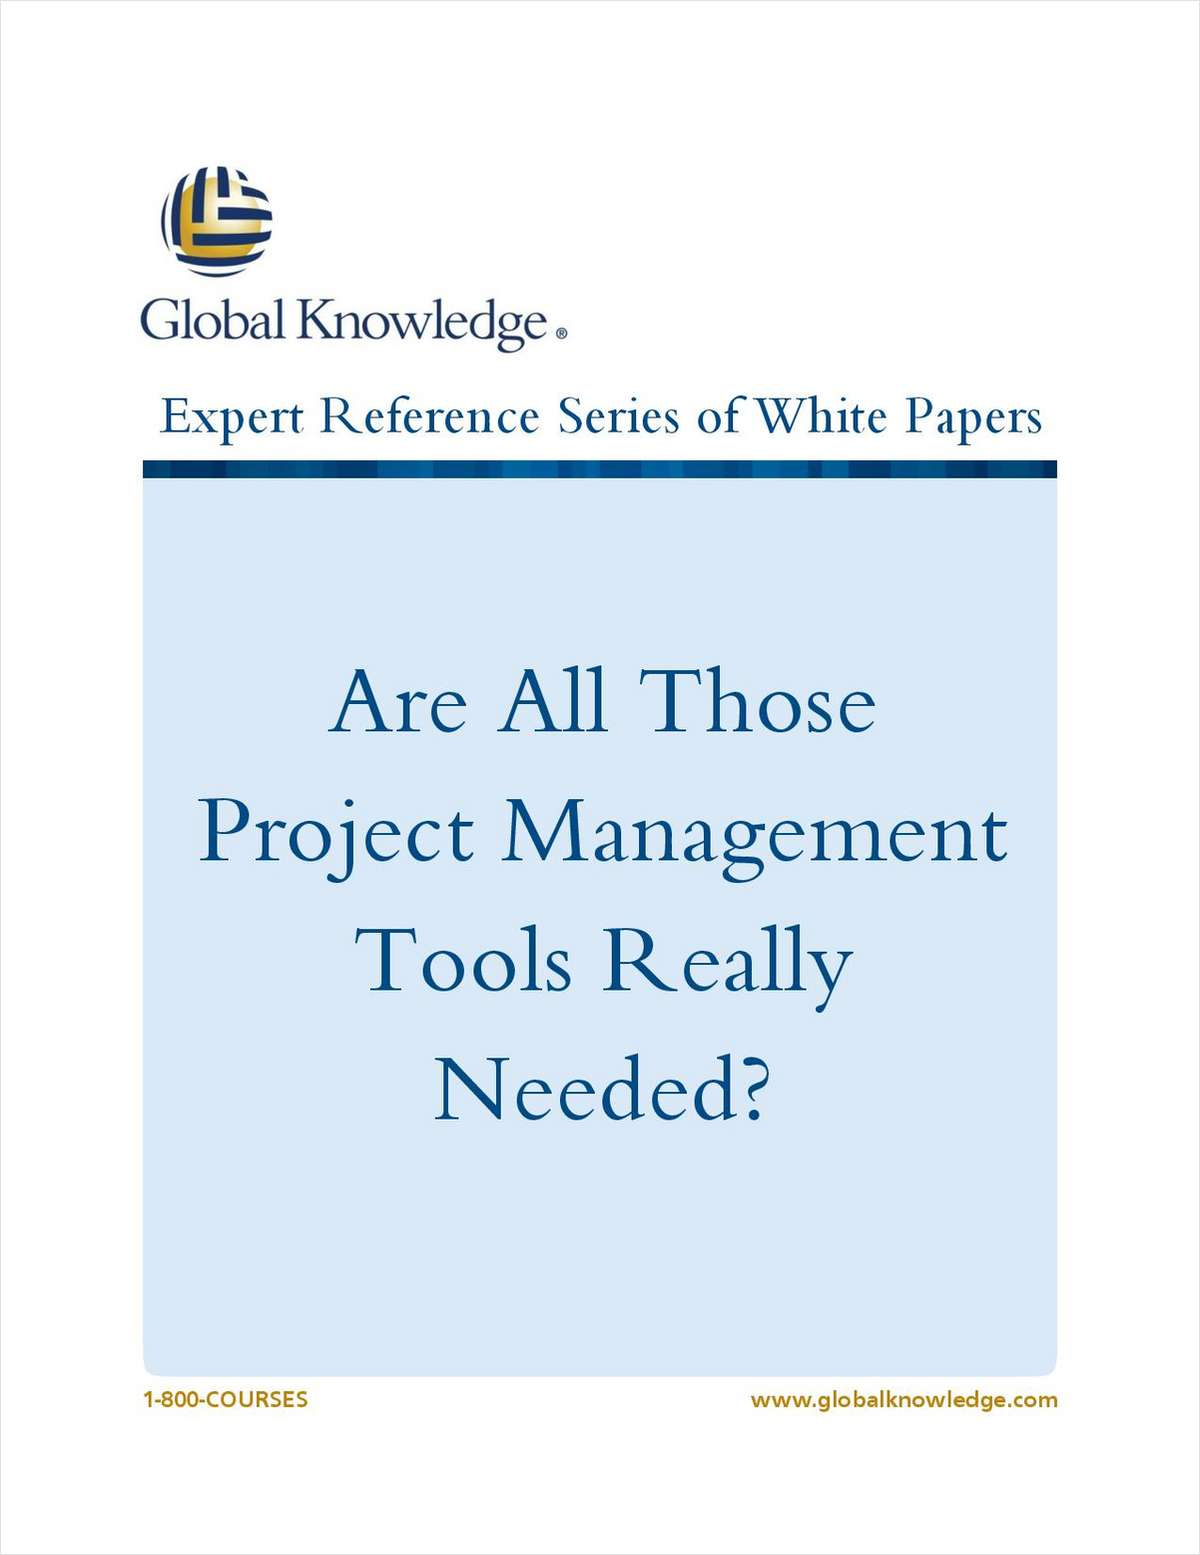 Are All Those Project Management Tools Really Needed?